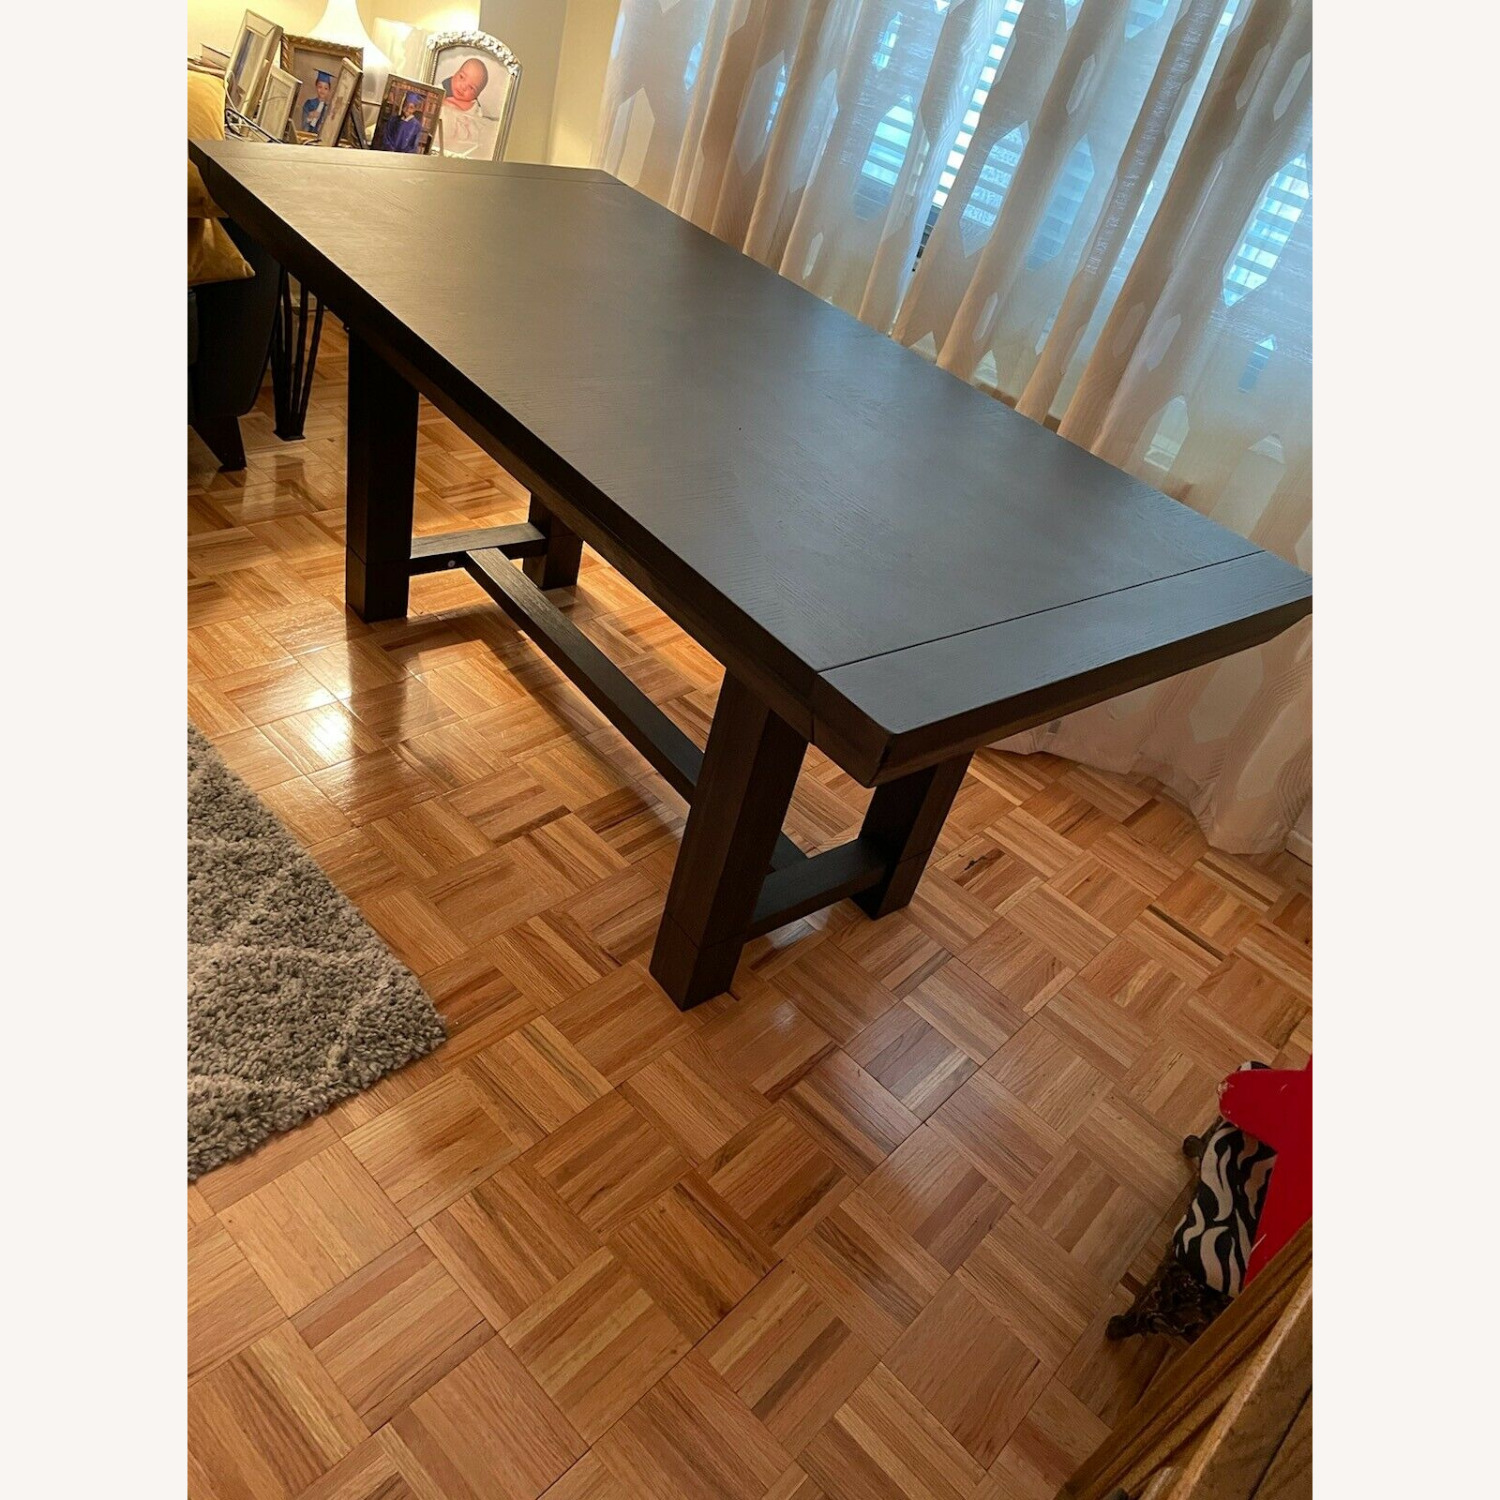 Ashley Furniture Dellbeck Extendable Dining Table - image-7